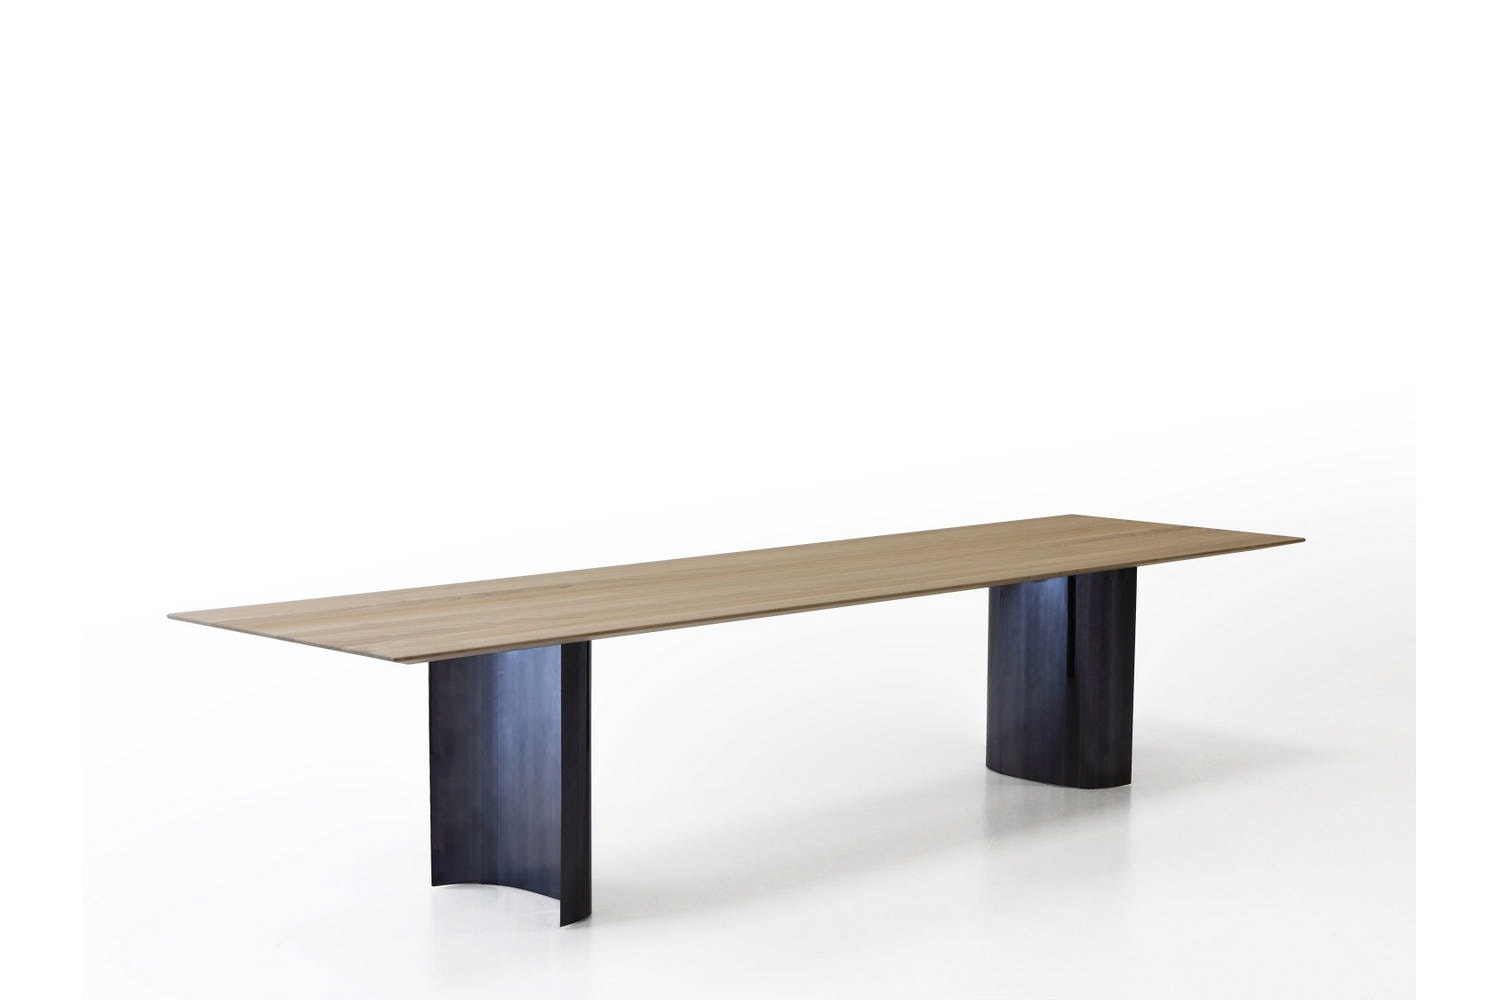 Jeff Table by Gabriele & Oscar Buratti for Porro